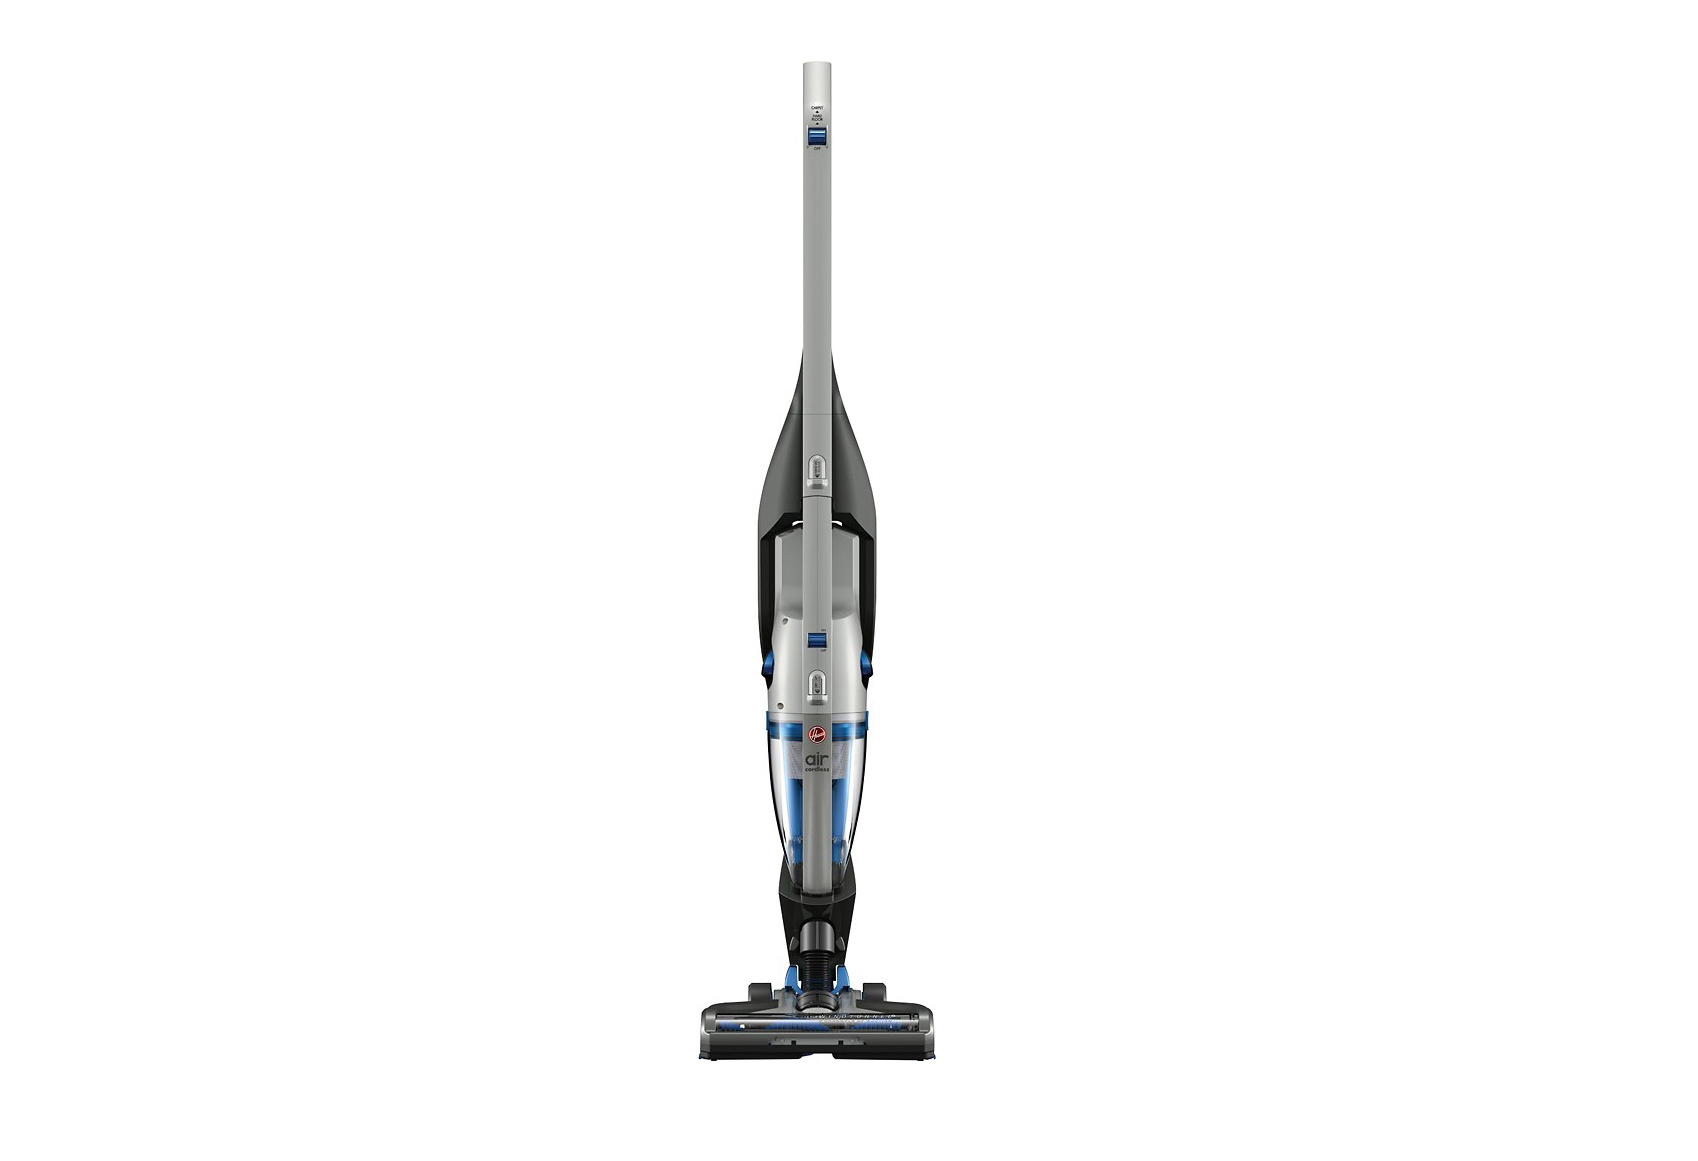 The Best Vacuum Cleaners | Real Simple